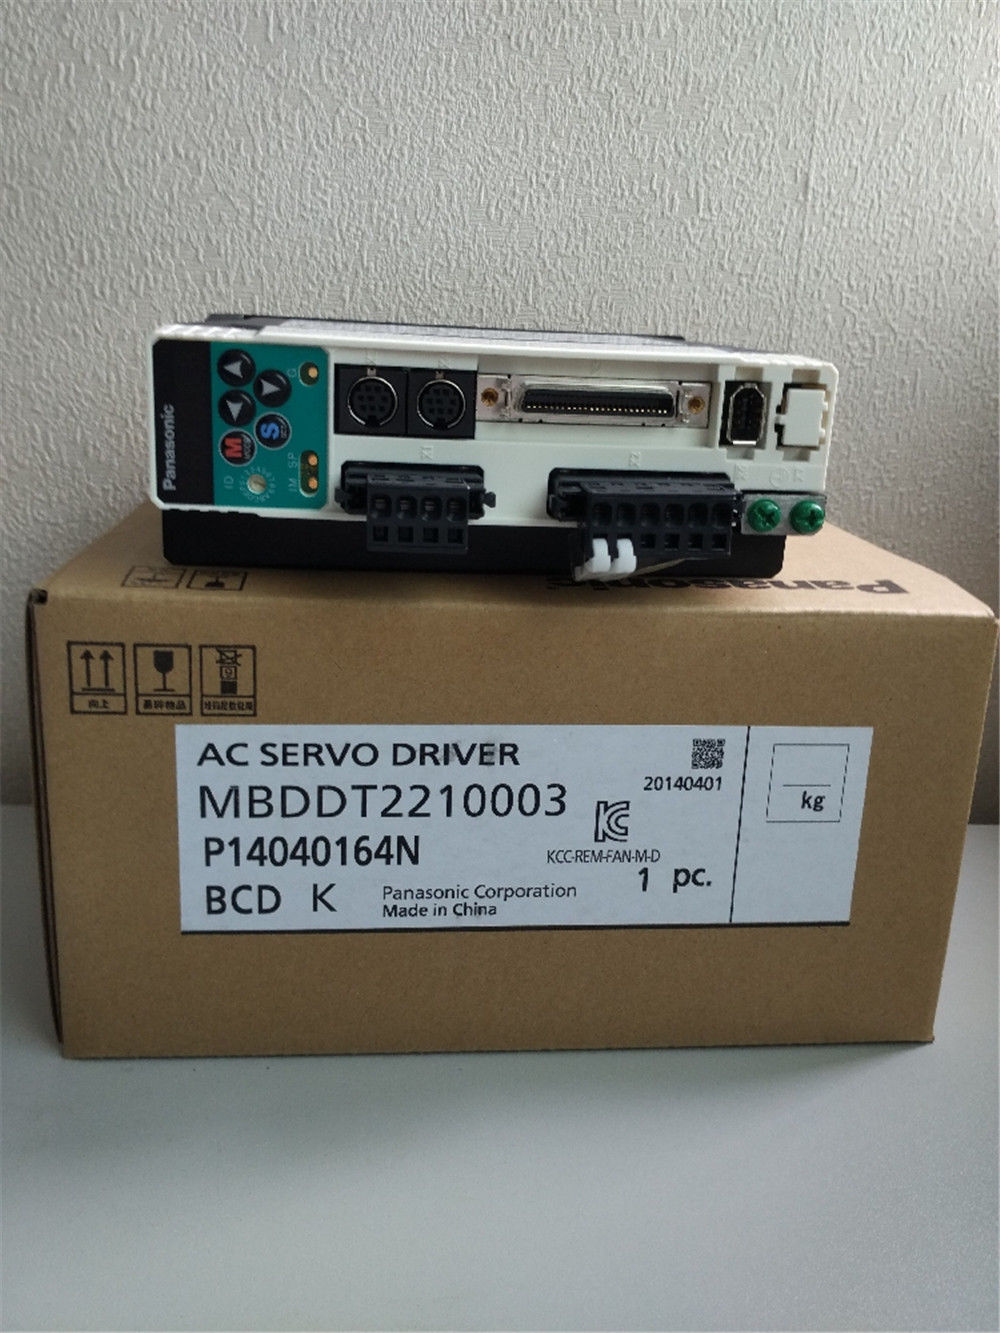 BRAND NEW PANASONIC Servo drive MBDDT2210003 400W in box